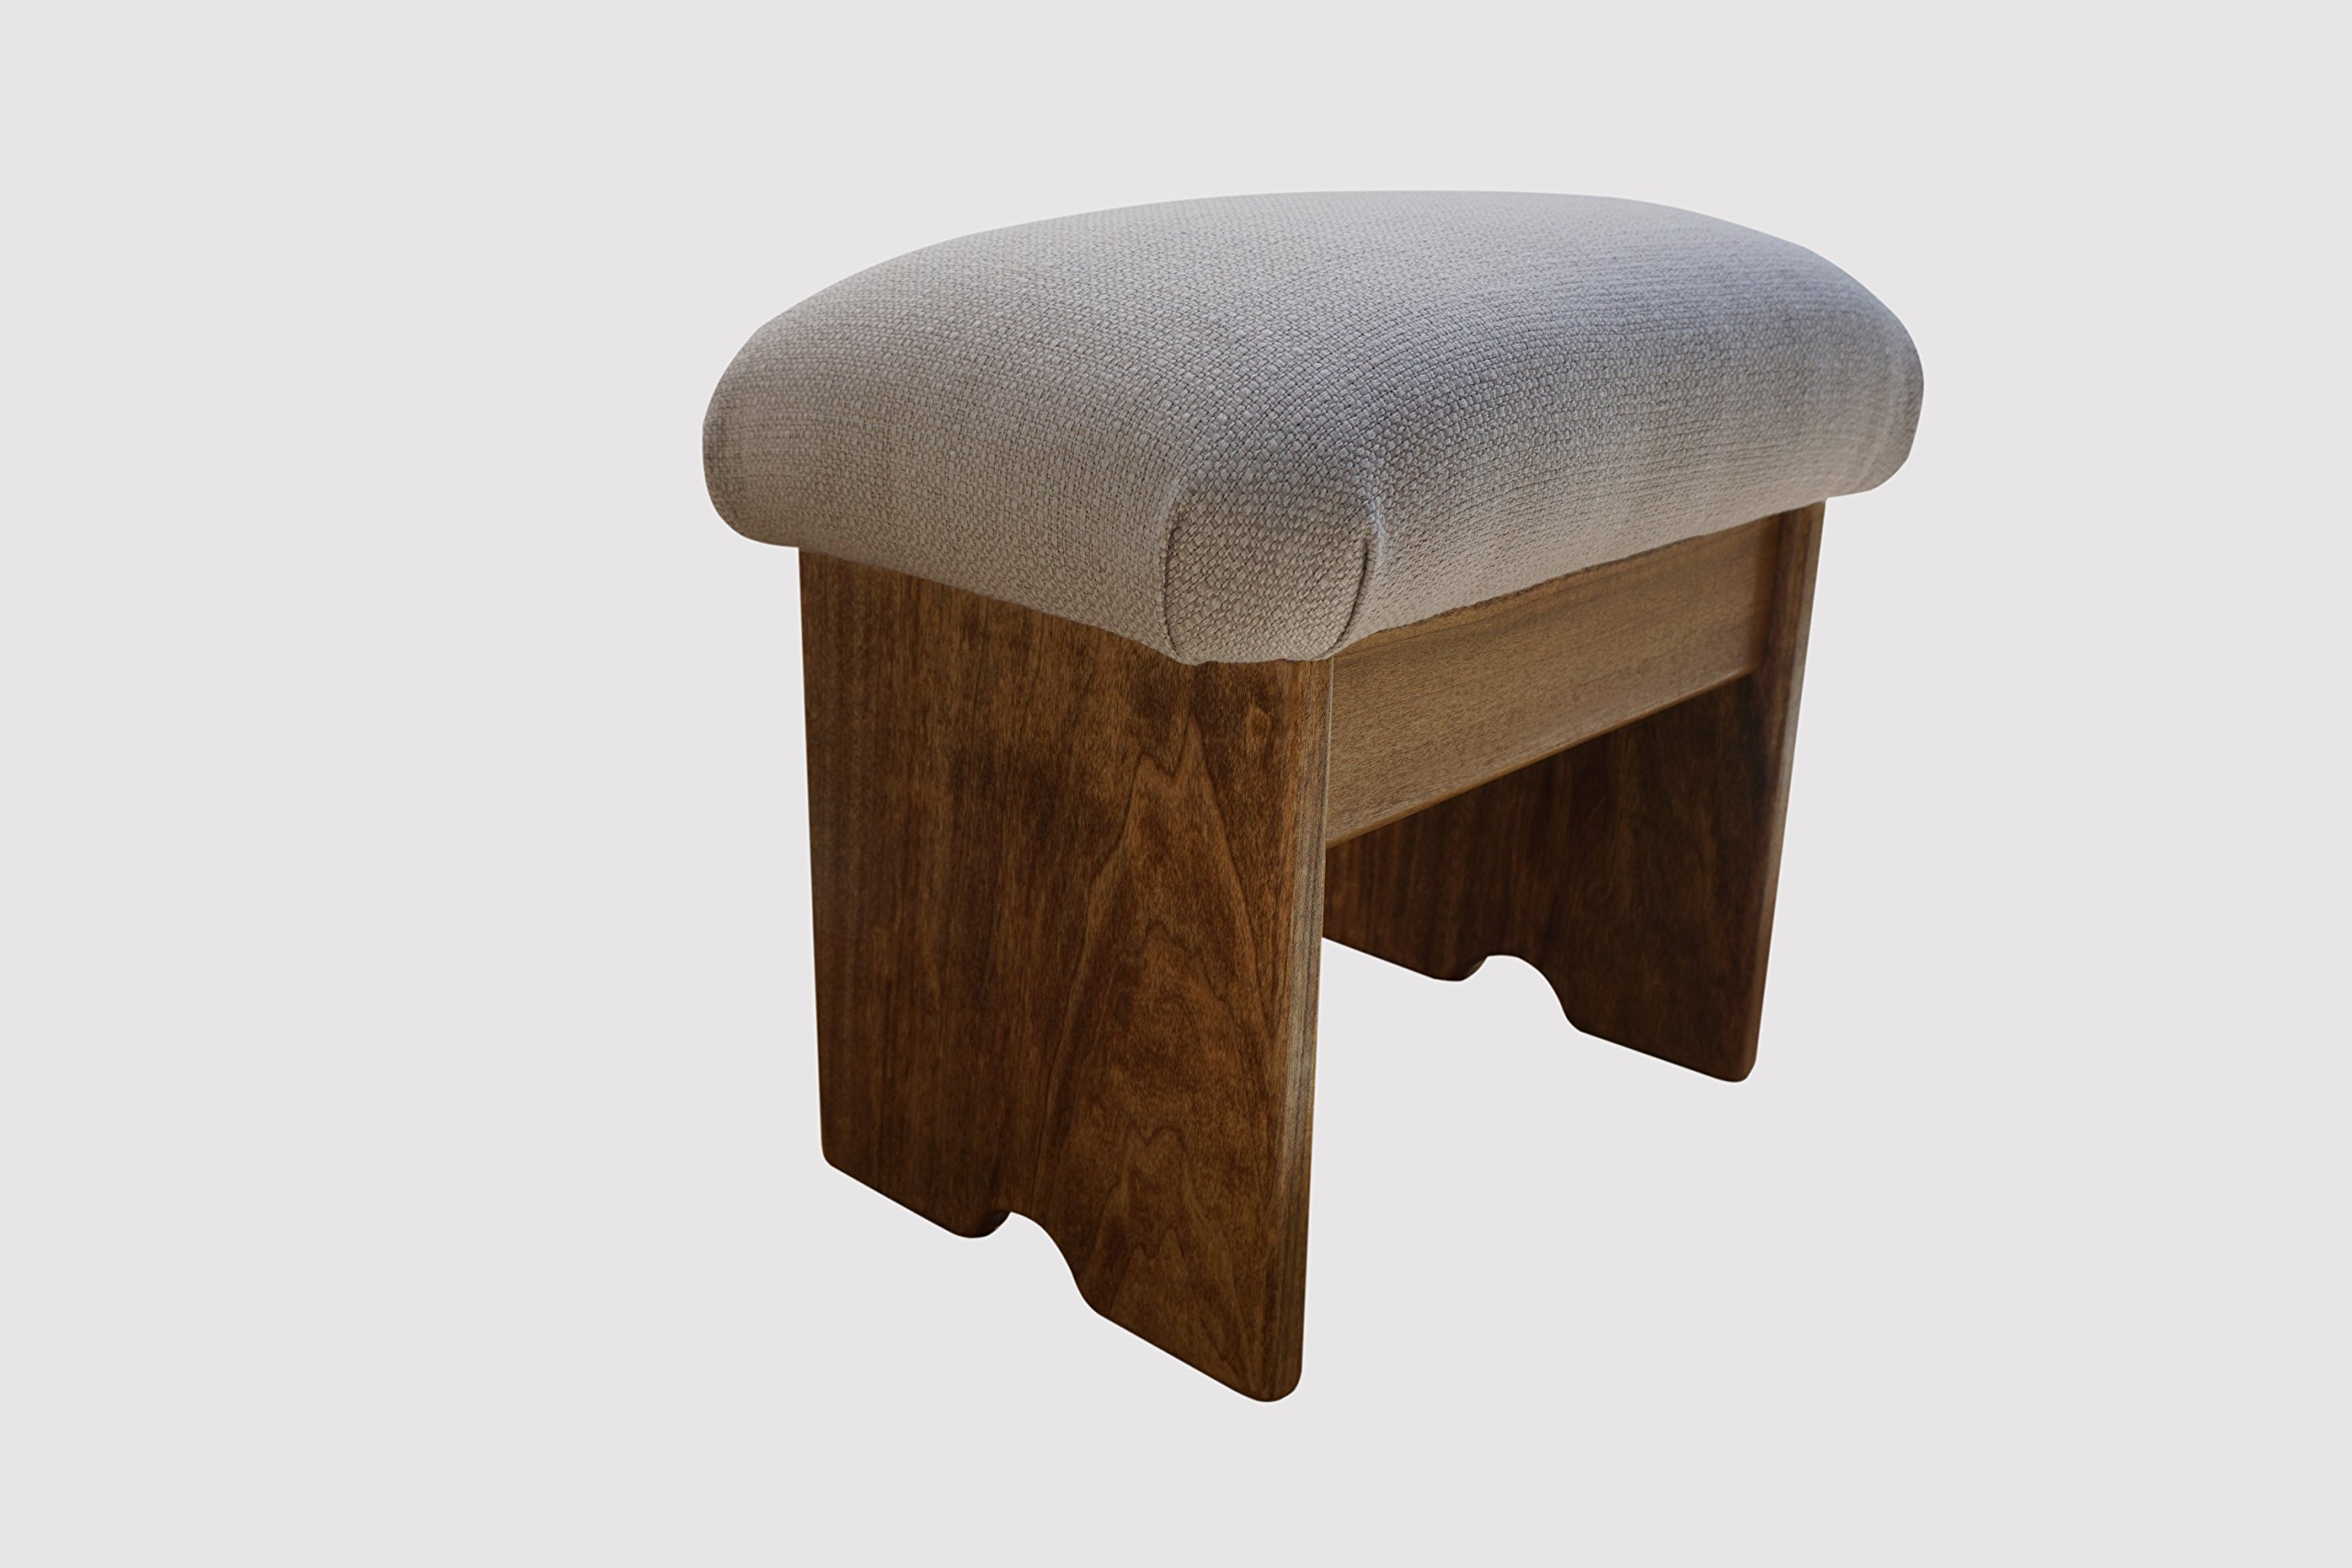 KR Ideas Regular Padded Foot Stool, 12'' Tall Malibu Sea Salt, Maple Stain (Made In The USA)